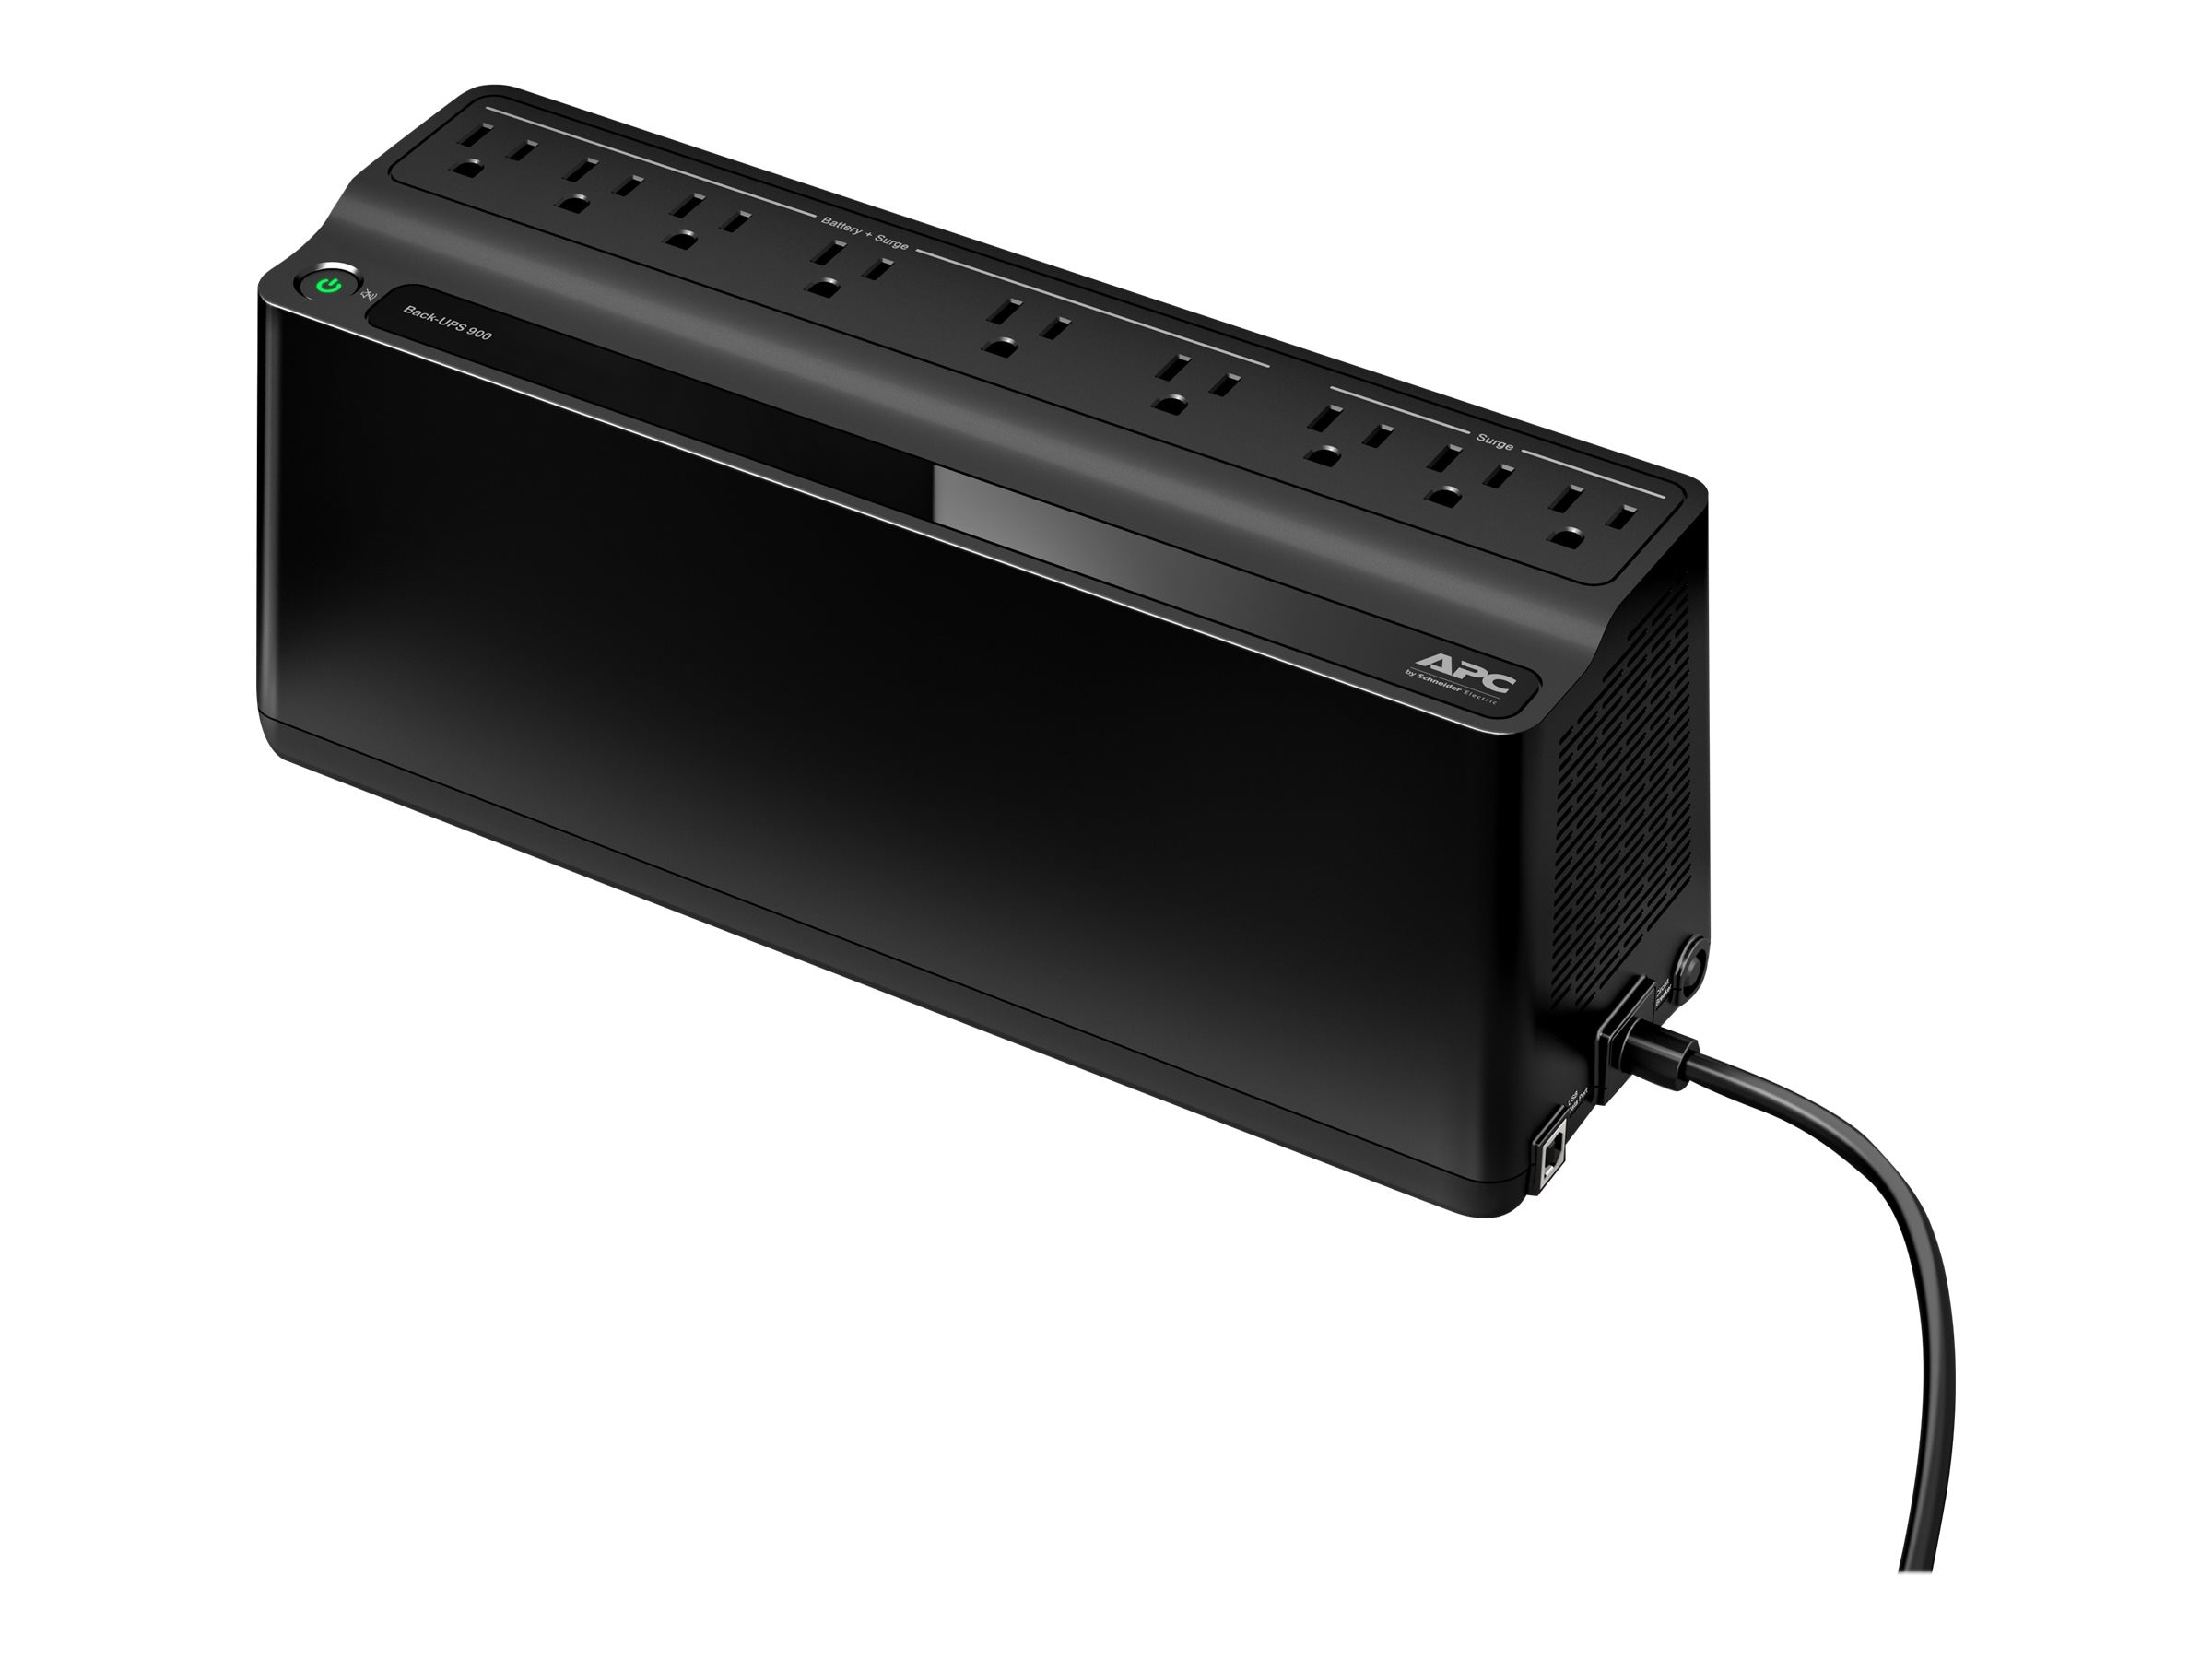 APC Back-UPS 900VA 480W 120V 5-15P Input 5ft Cord (9) Outlets USB Energy Star